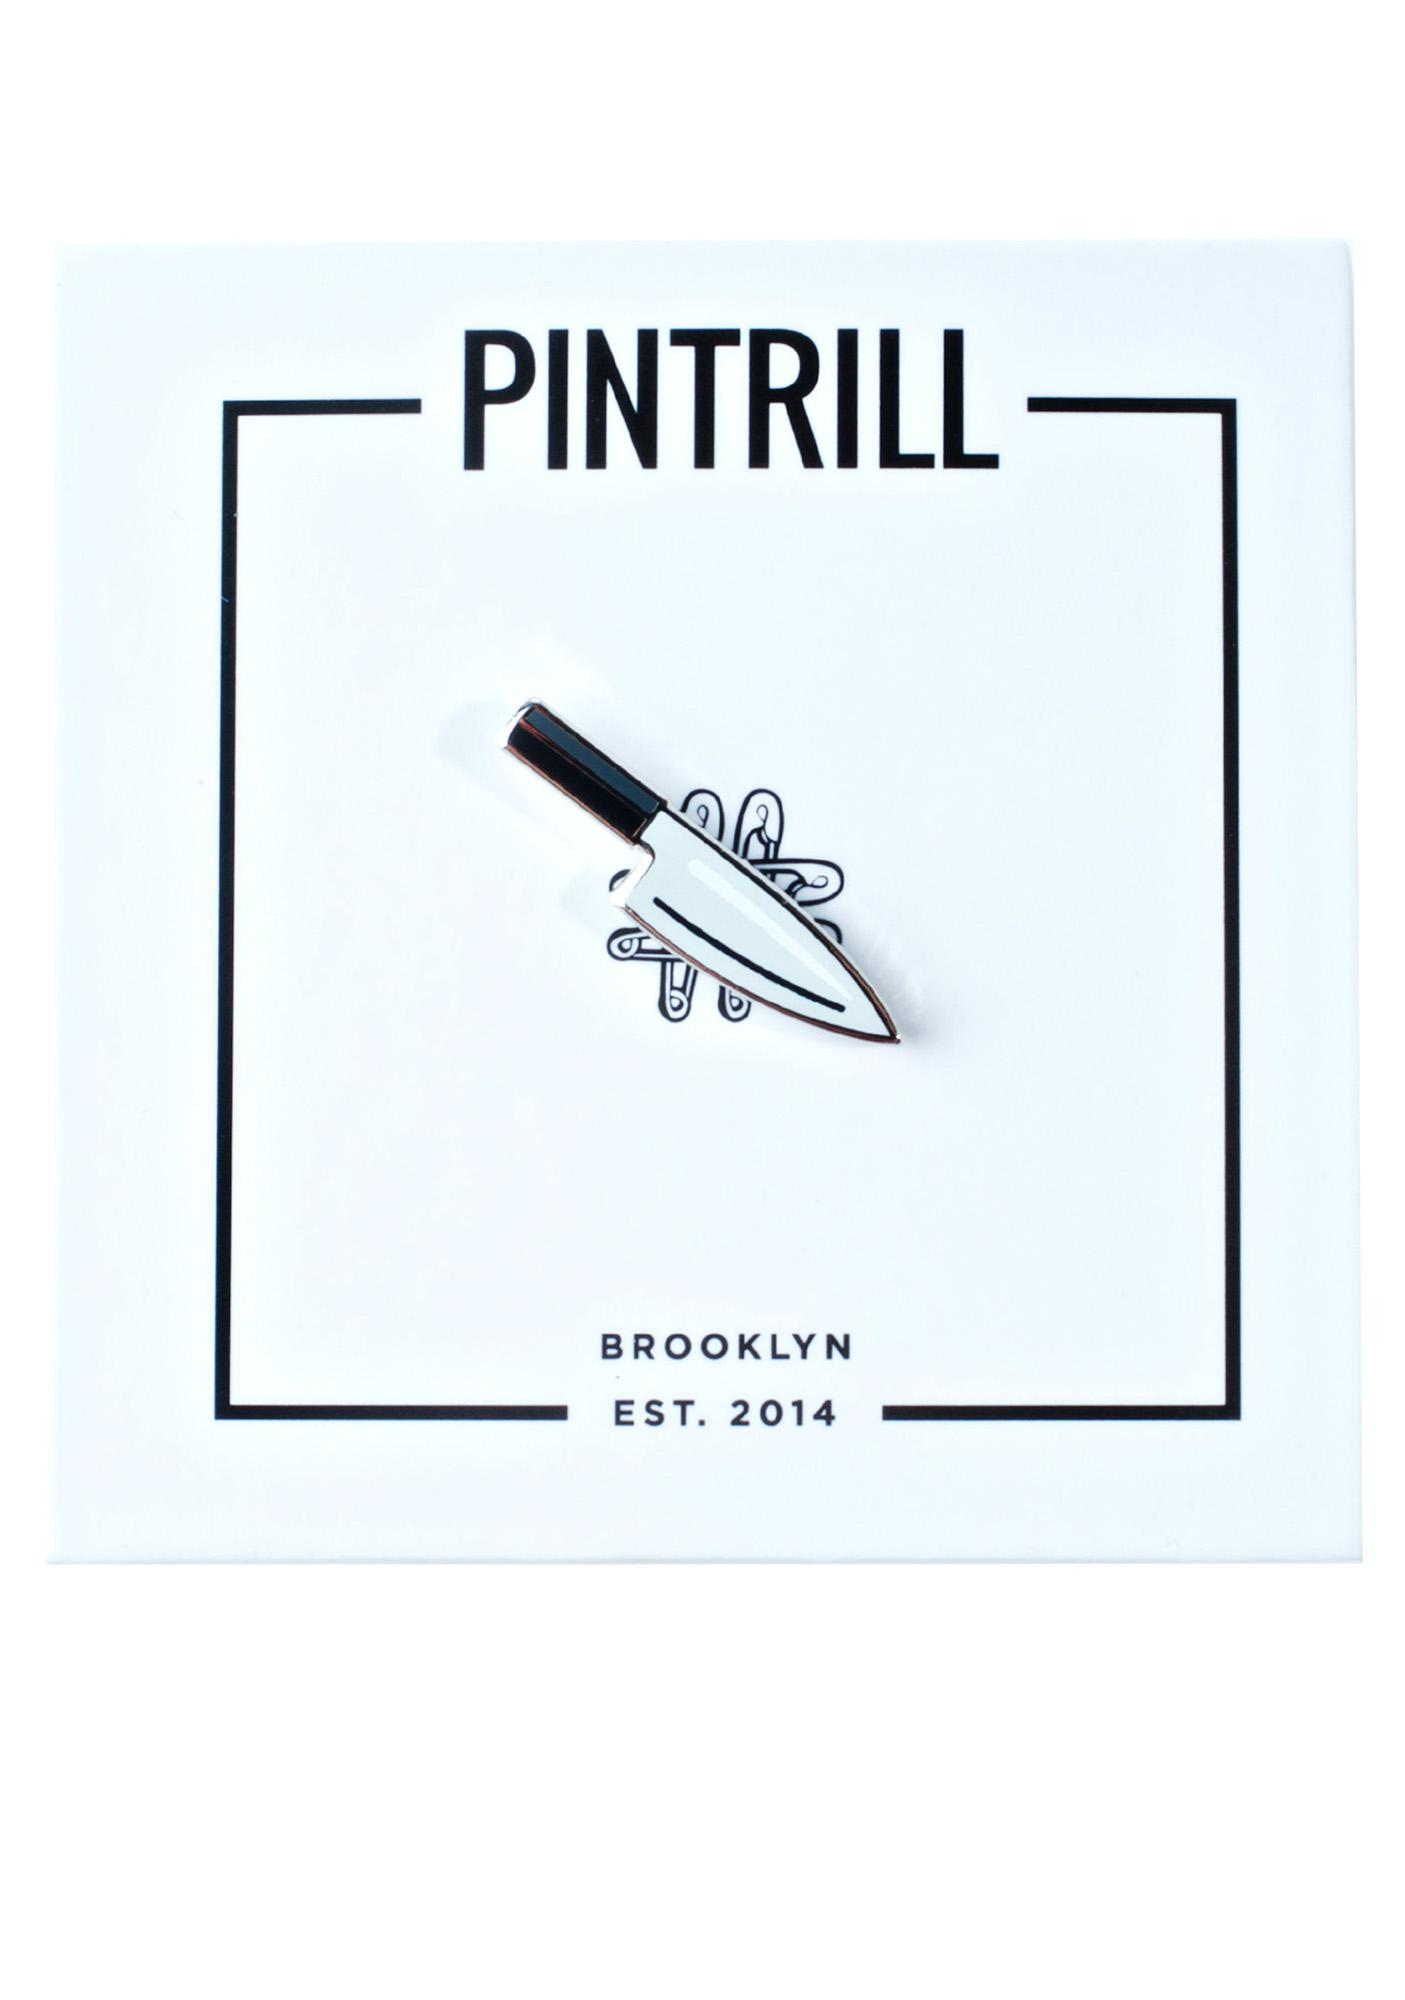 Pintrill Knife Pin